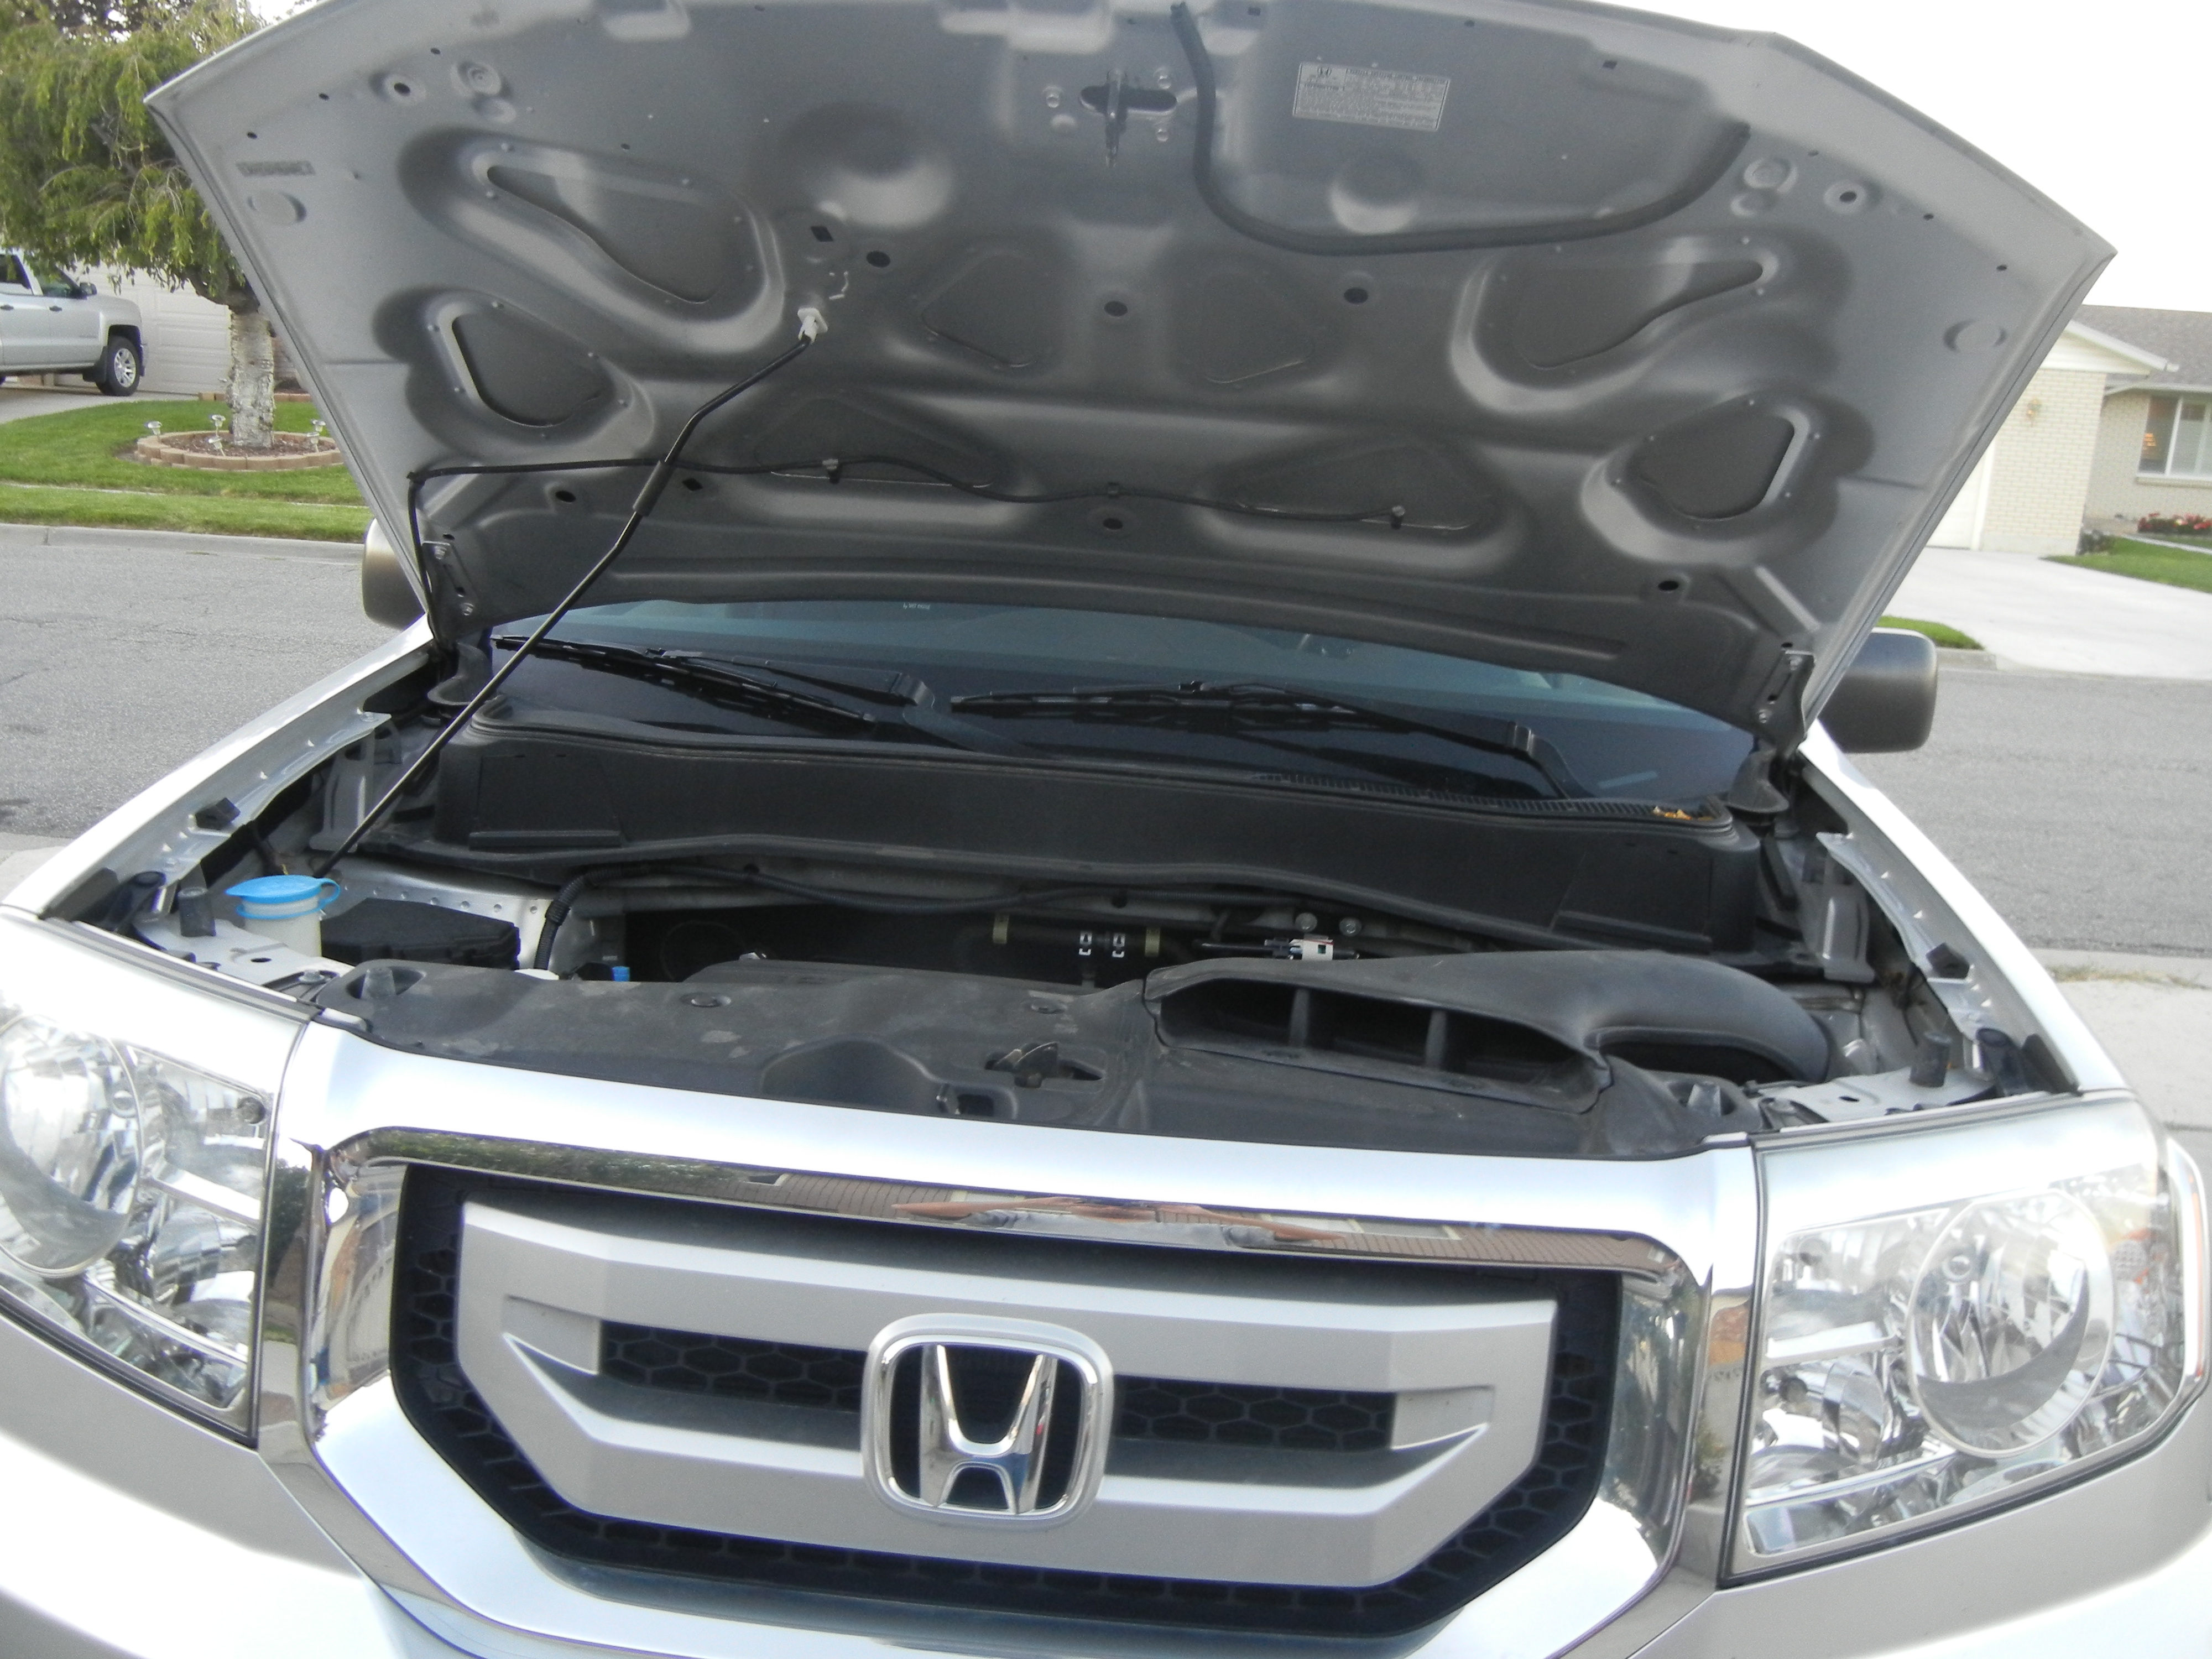 ...always service and maintained at Larry H. Miller Honda in Murray....